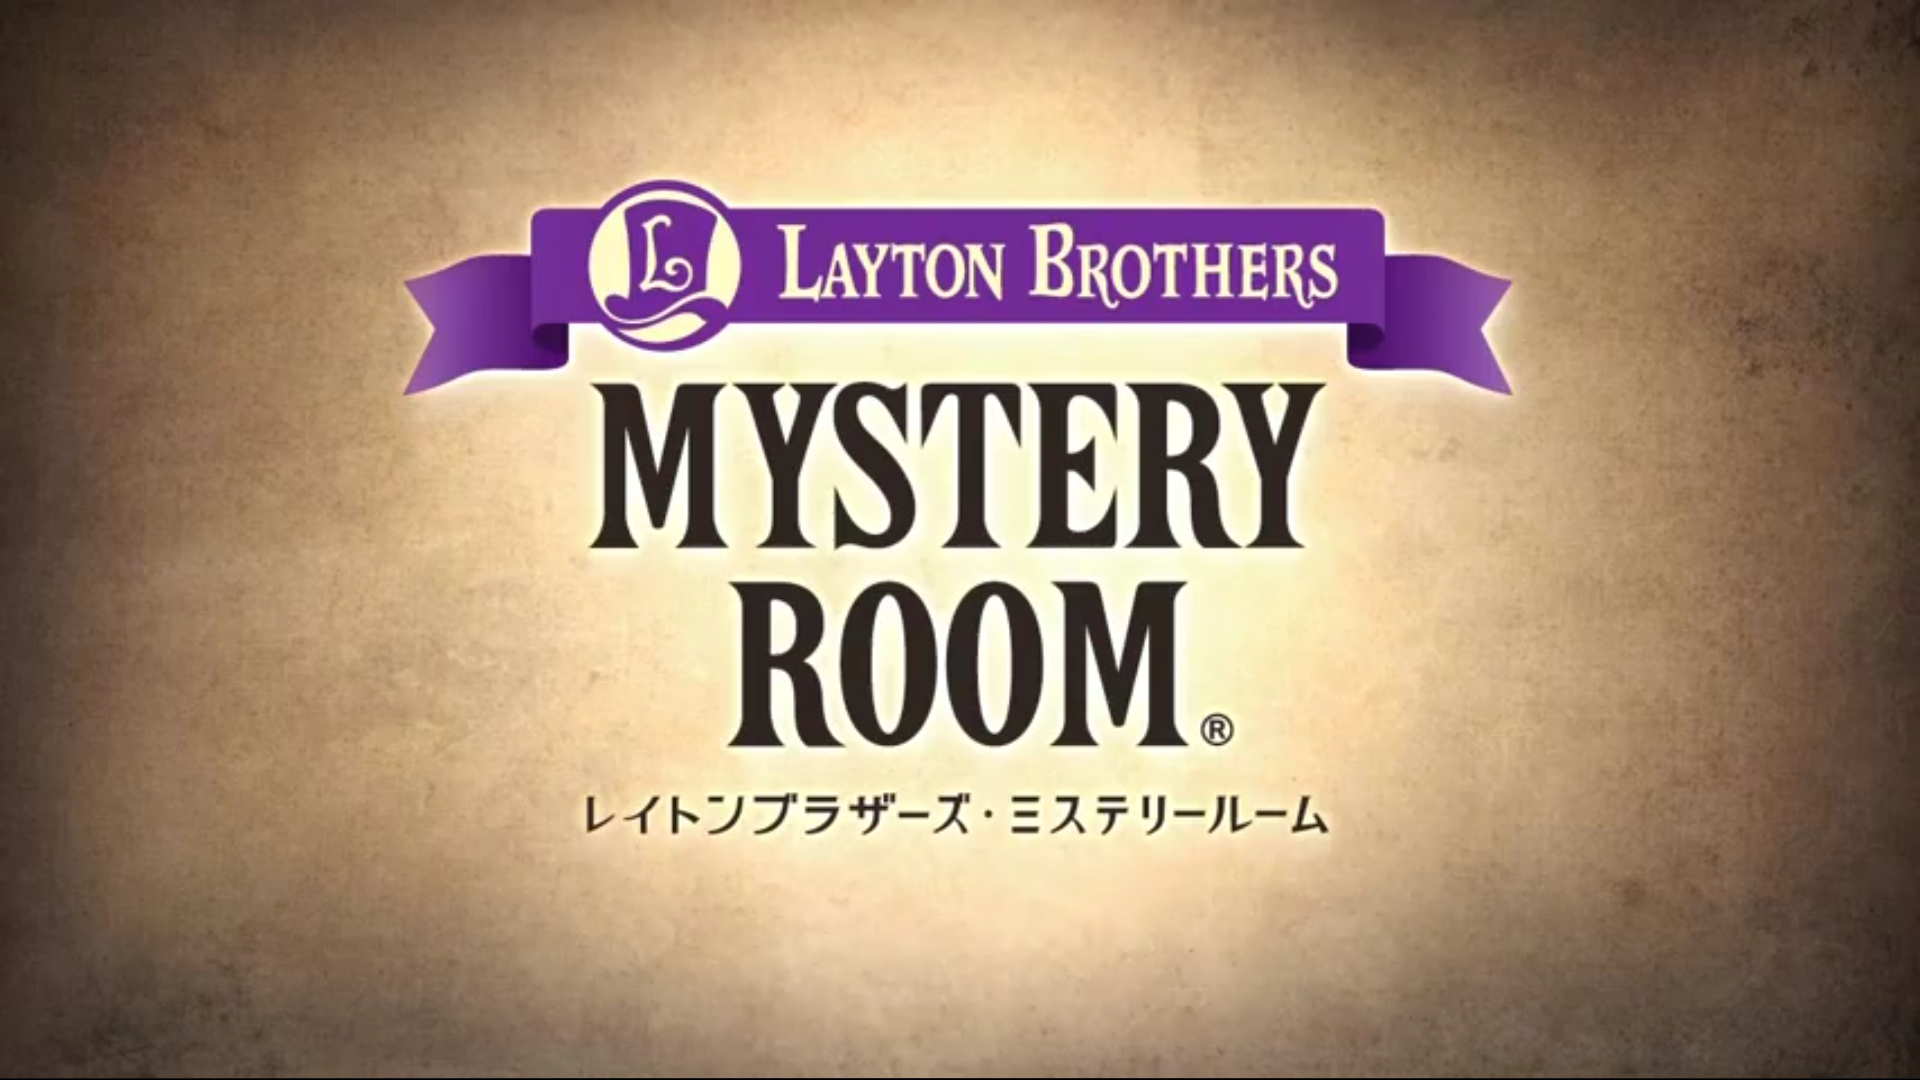 Professor Layton coming to iOS in Layton Brothers: Mystery Room